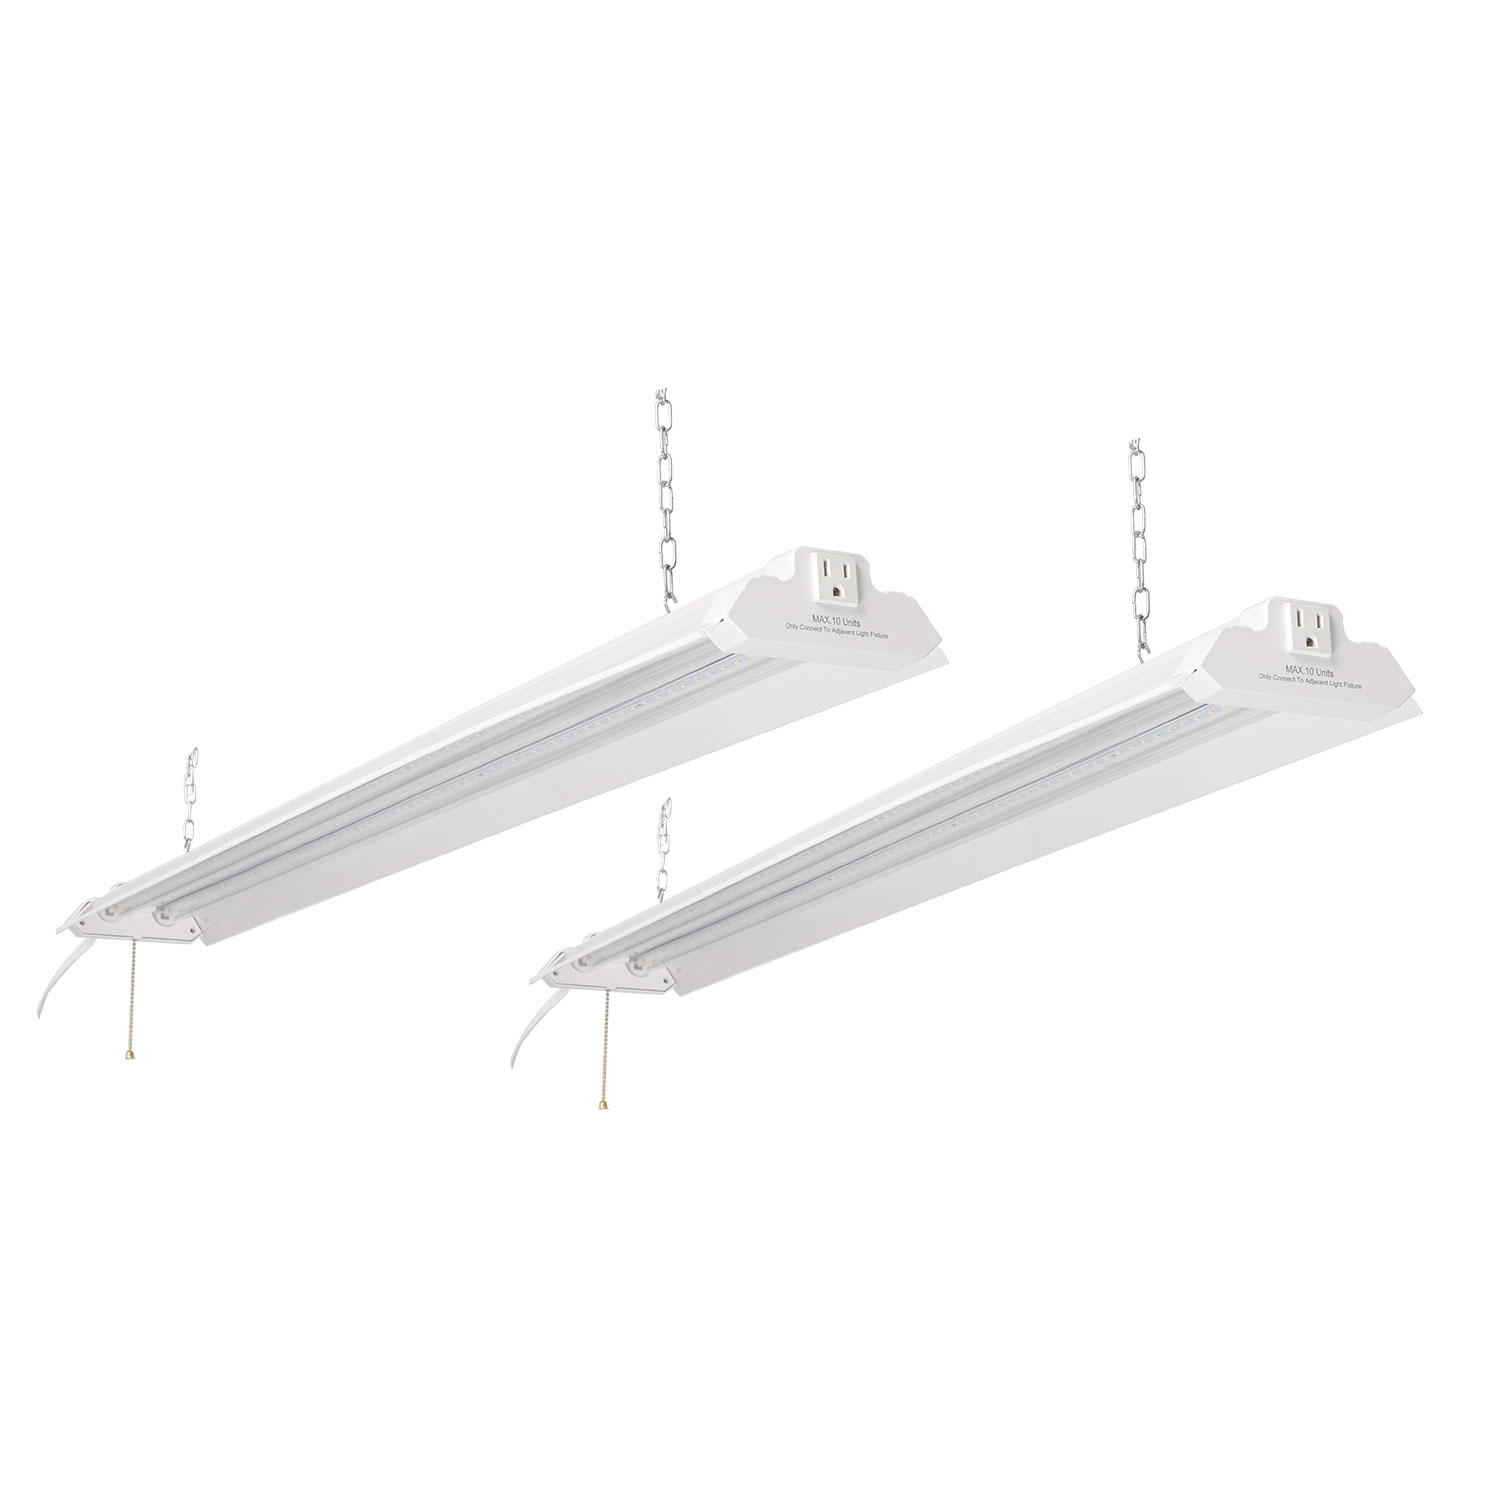 2-Pack Honeywell 5000 Lumen 4' LED Metal Shop Light